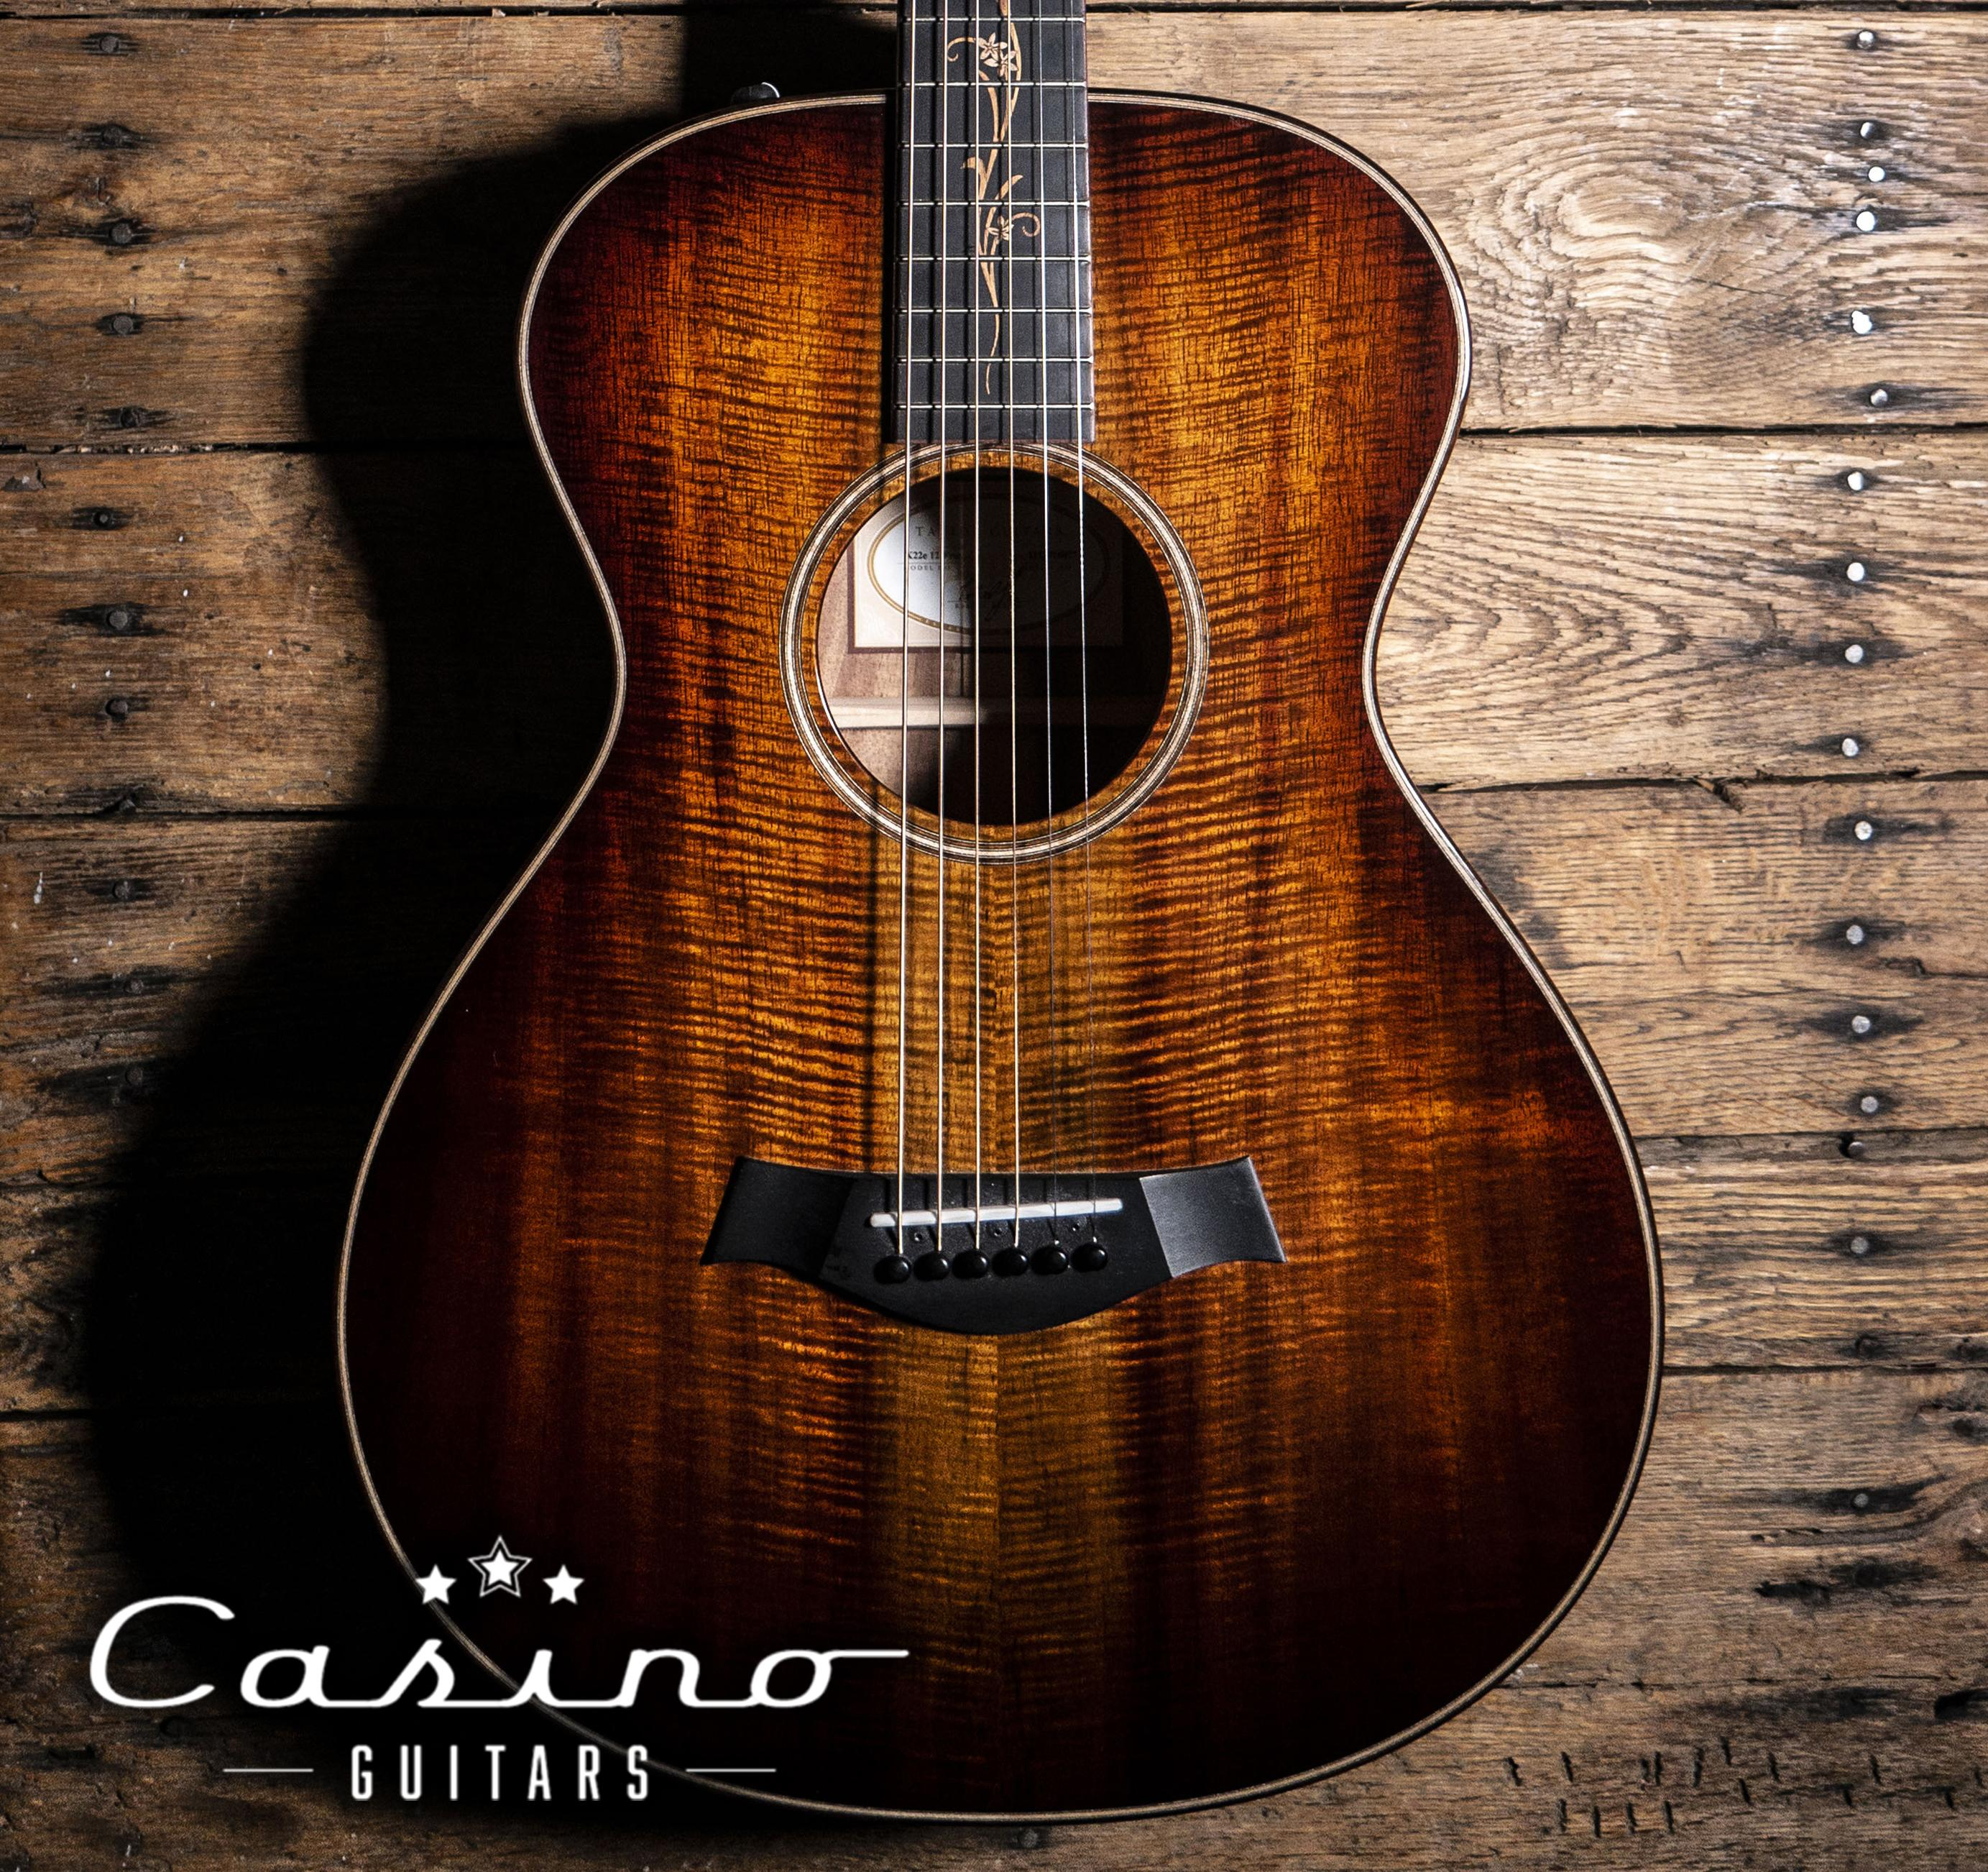 Who has the best sounding Koa guitar? This one is a Taylor K22. : guitarporn